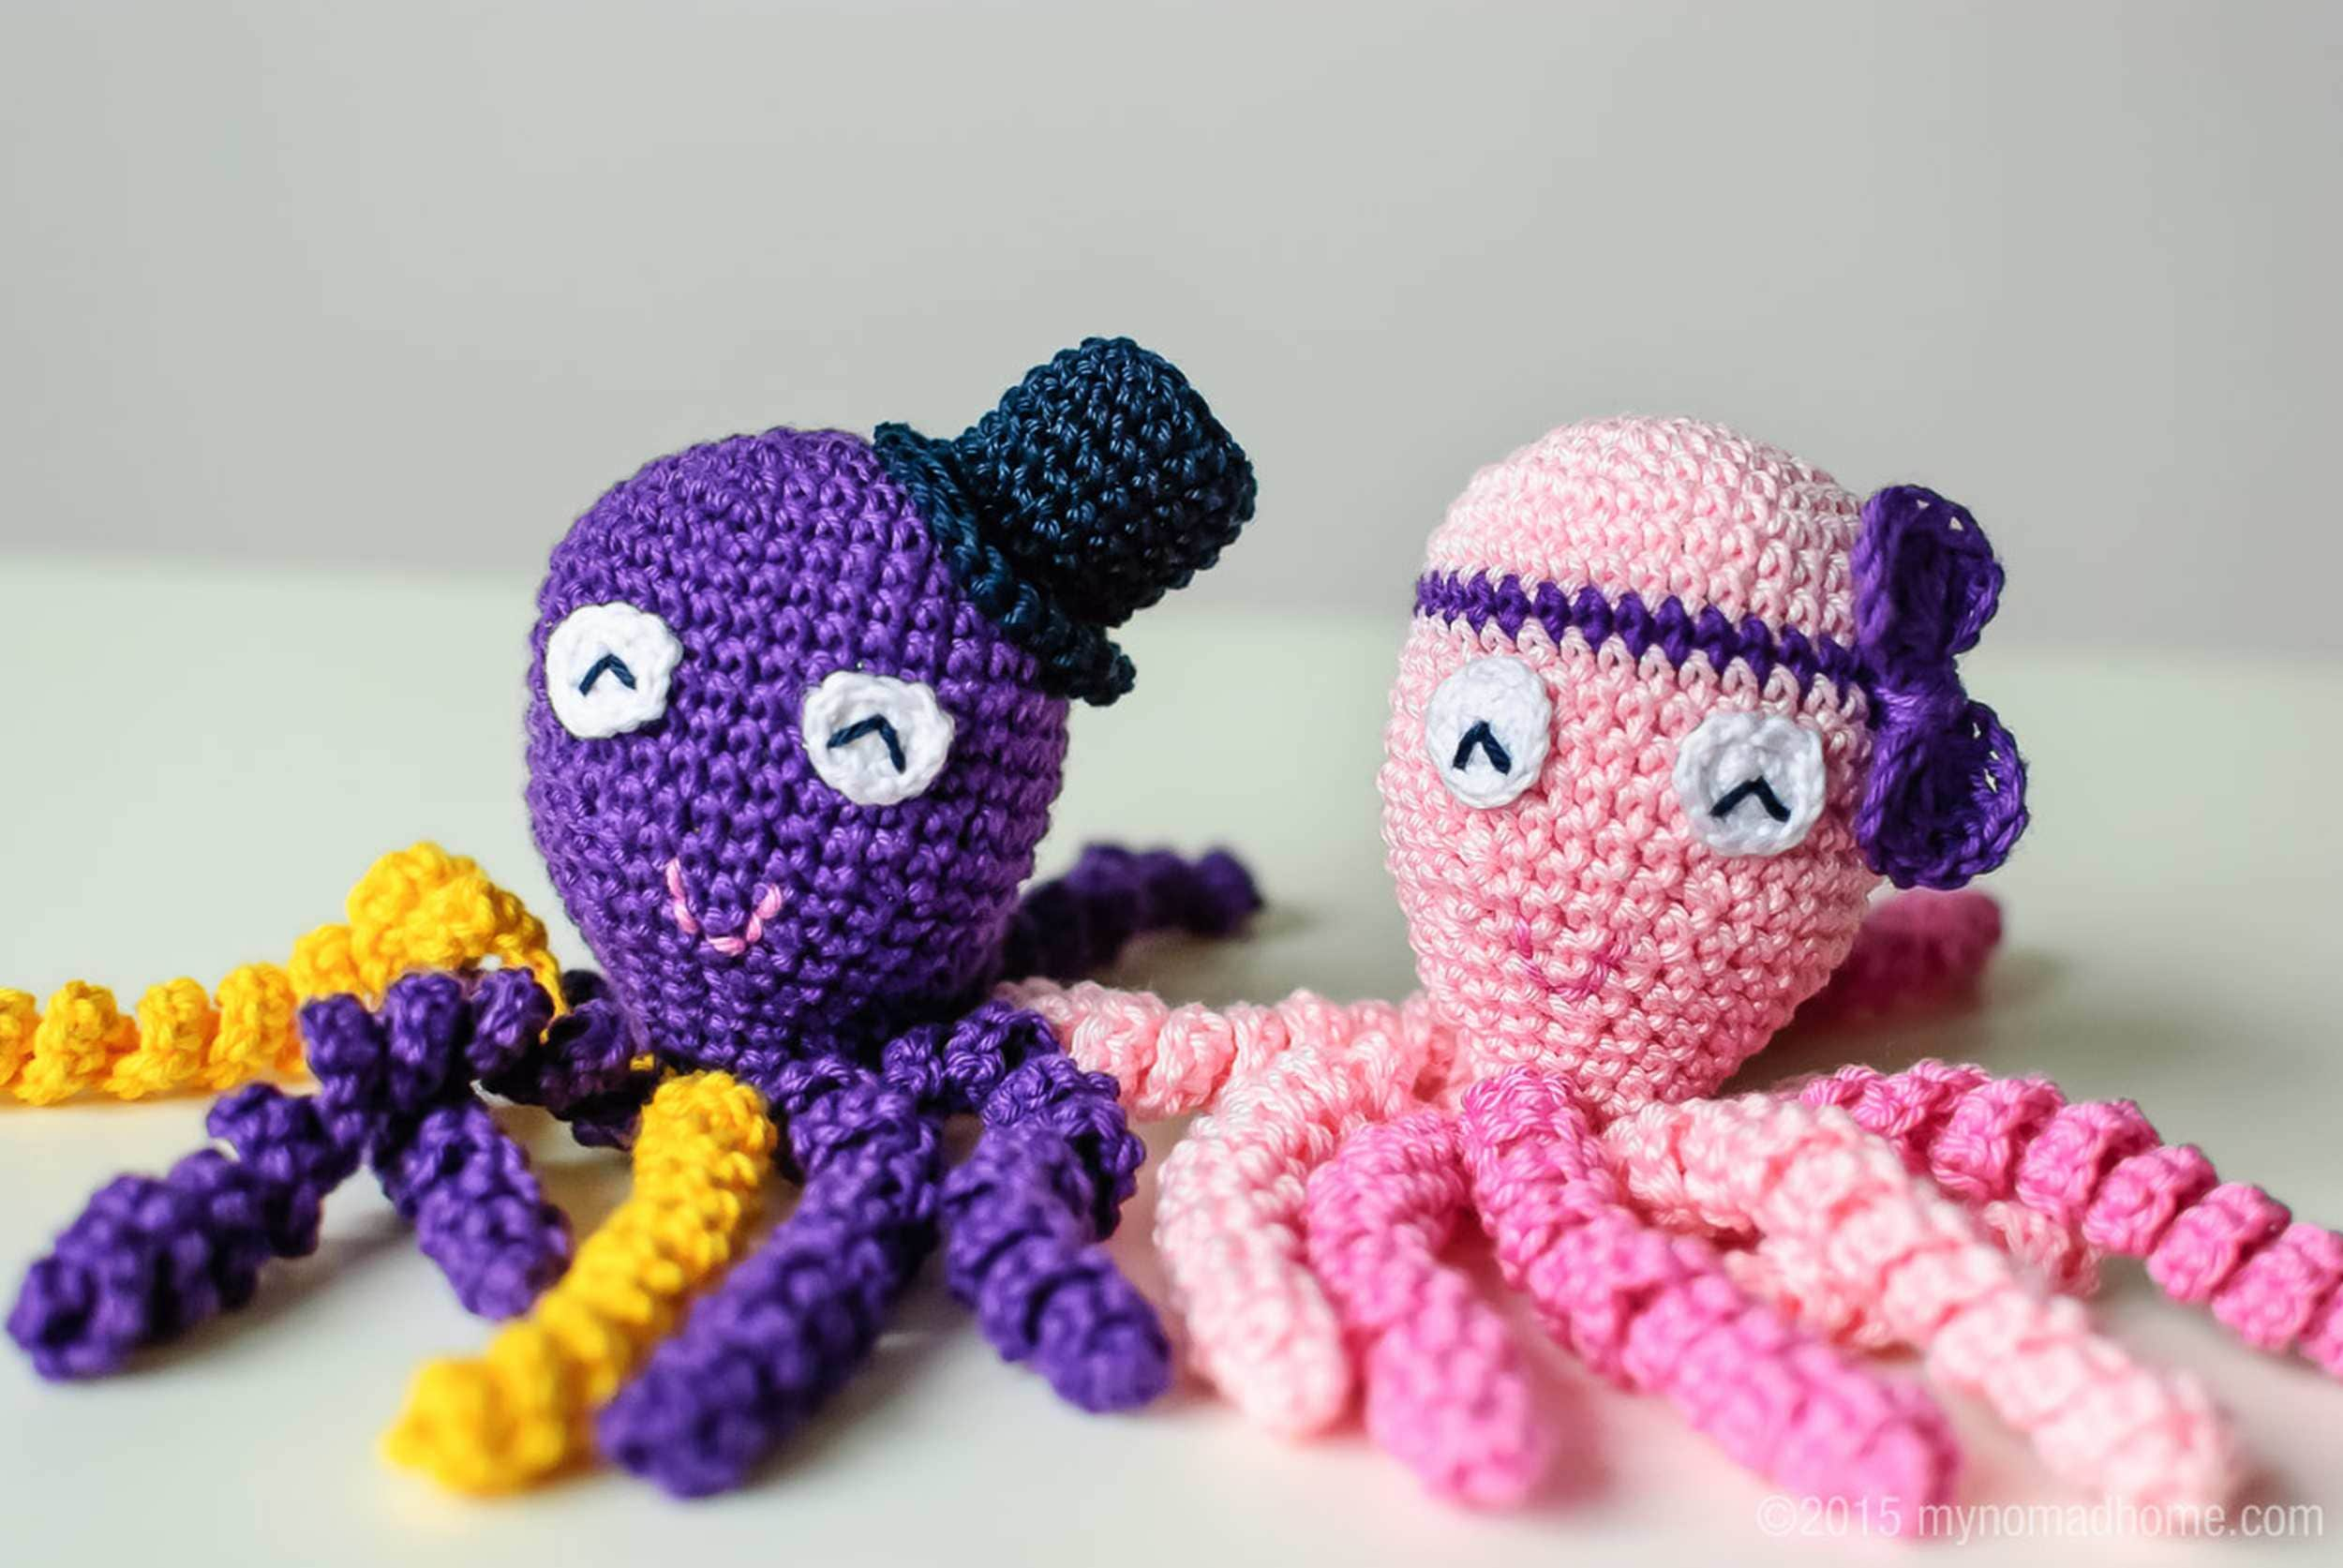 Premature Babies Given Comfort And Health Boost By Crochet Octopus